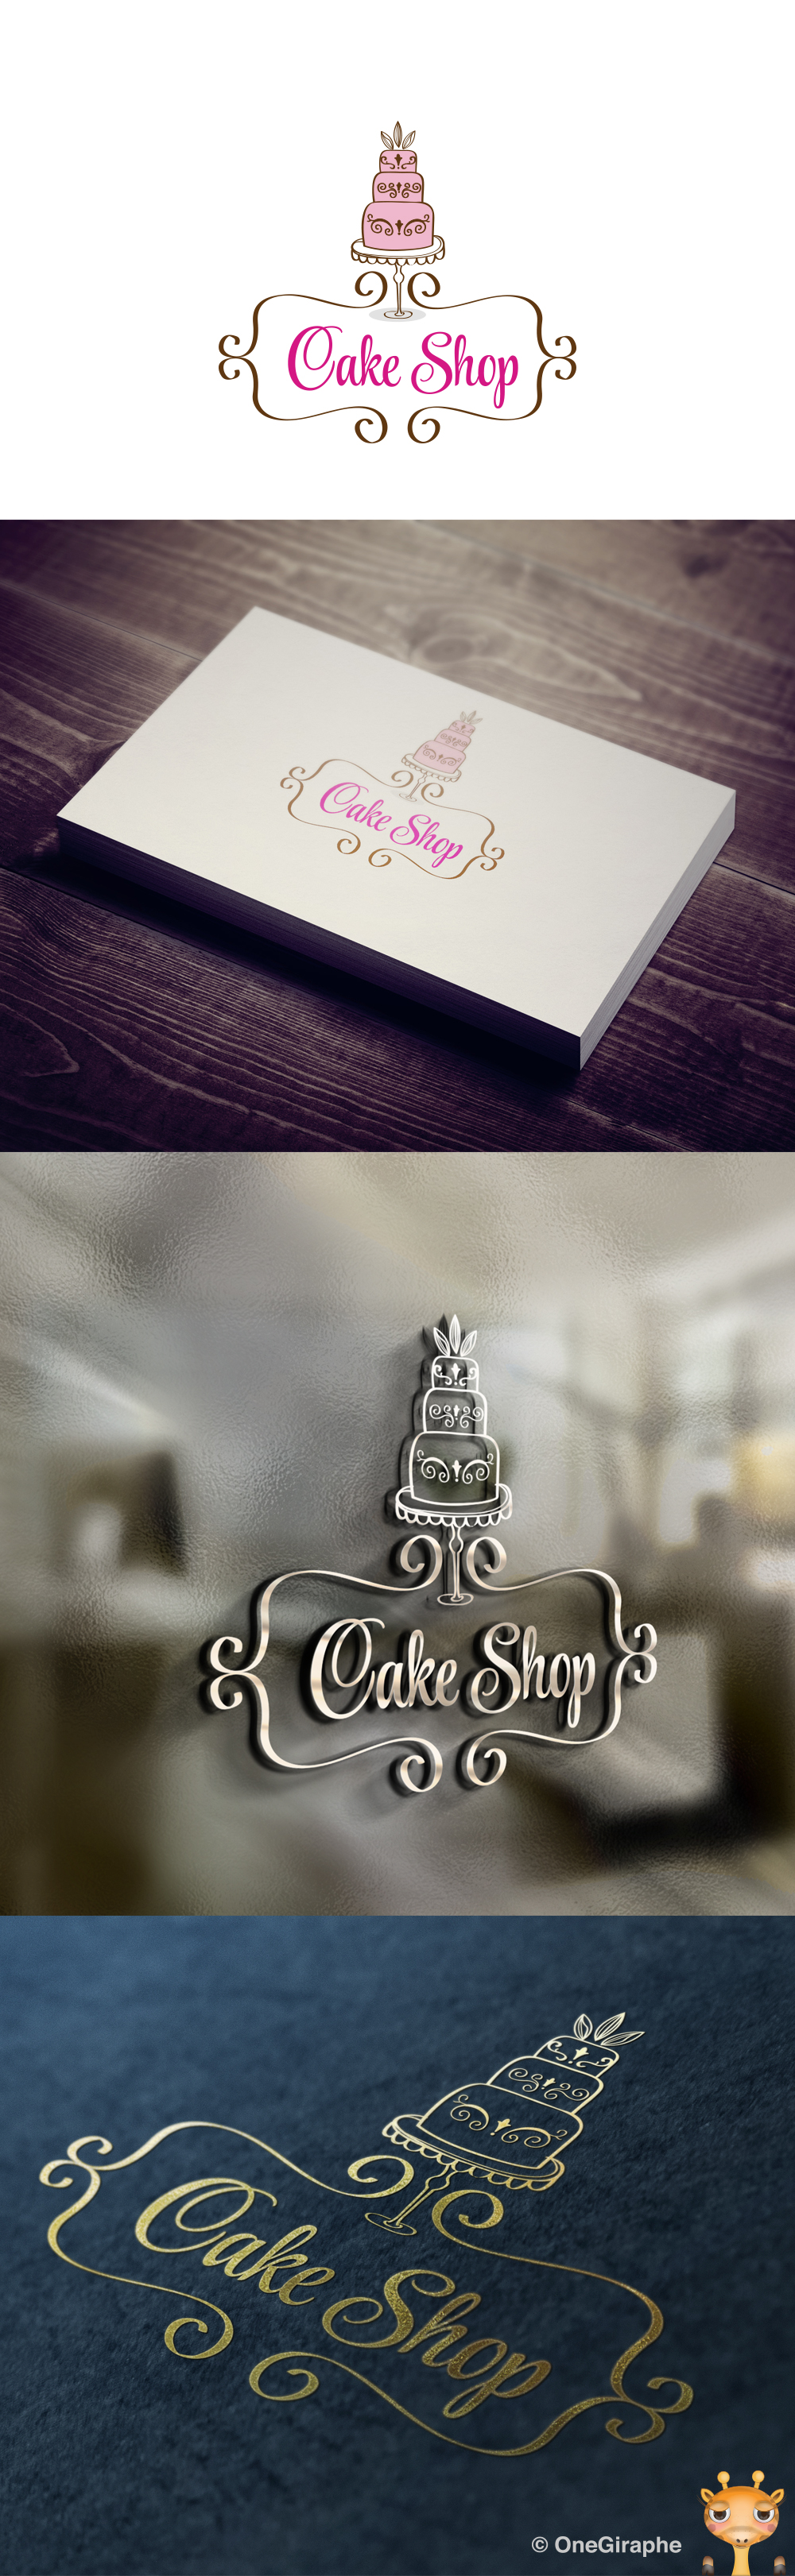 Pin by Stacy Truslow on Bakery ideas Cake logo design